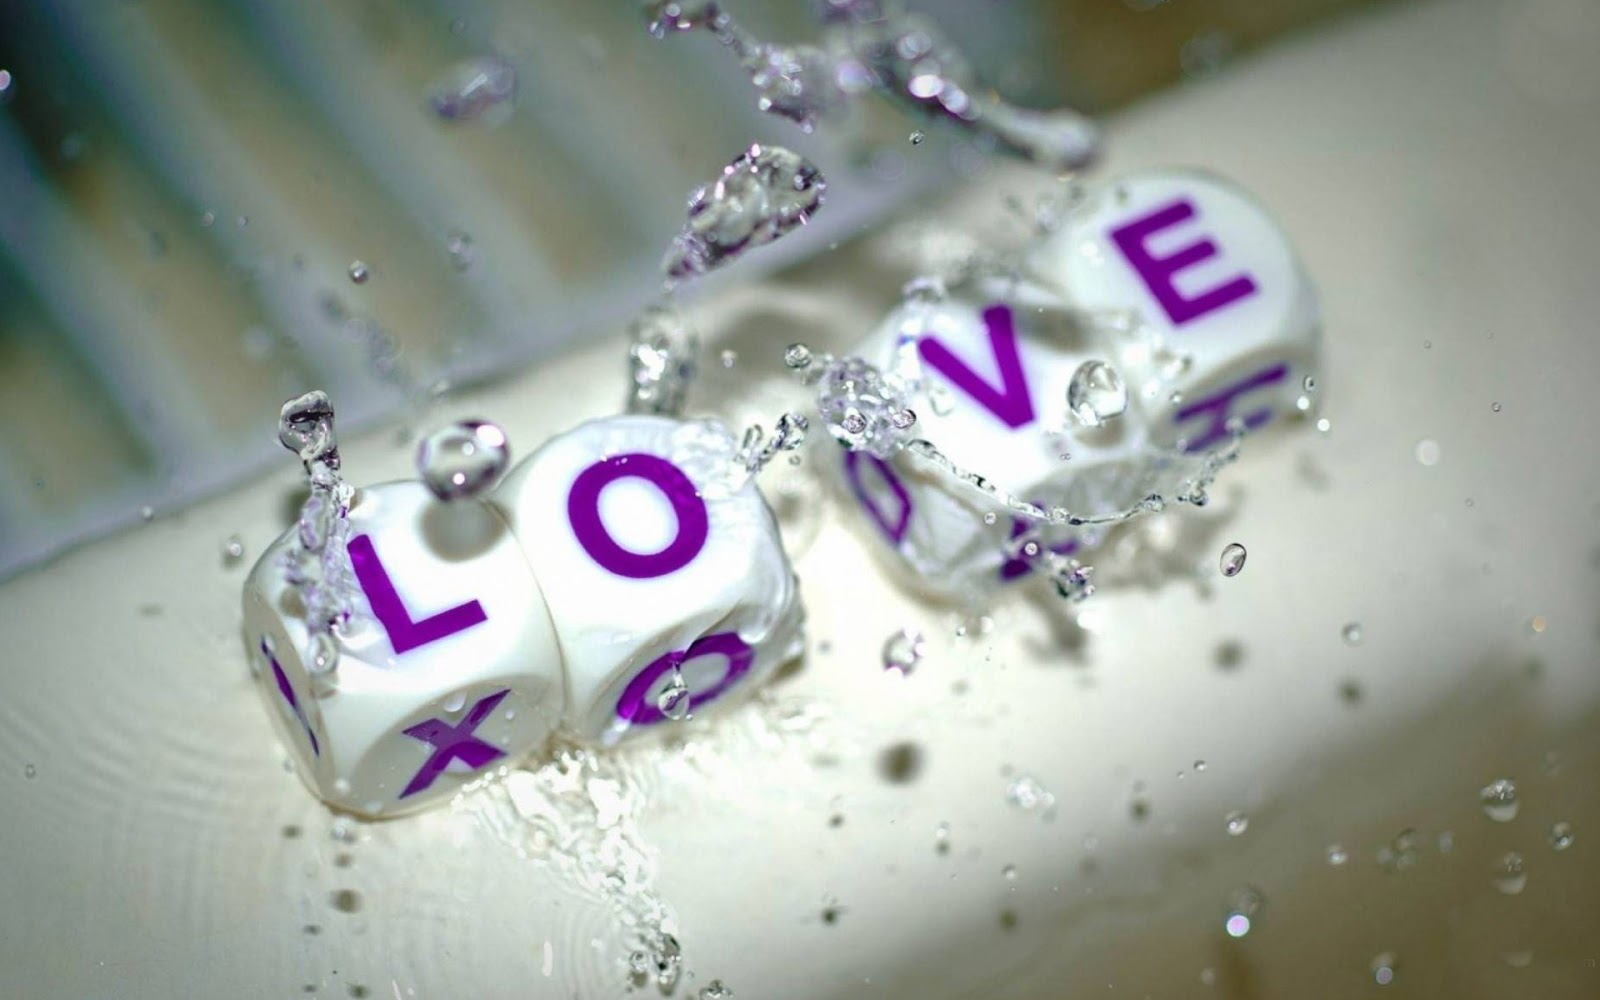 Beautiful Love HD Wallpapers free Download in 1080p ~ Super HD Wallpaperss